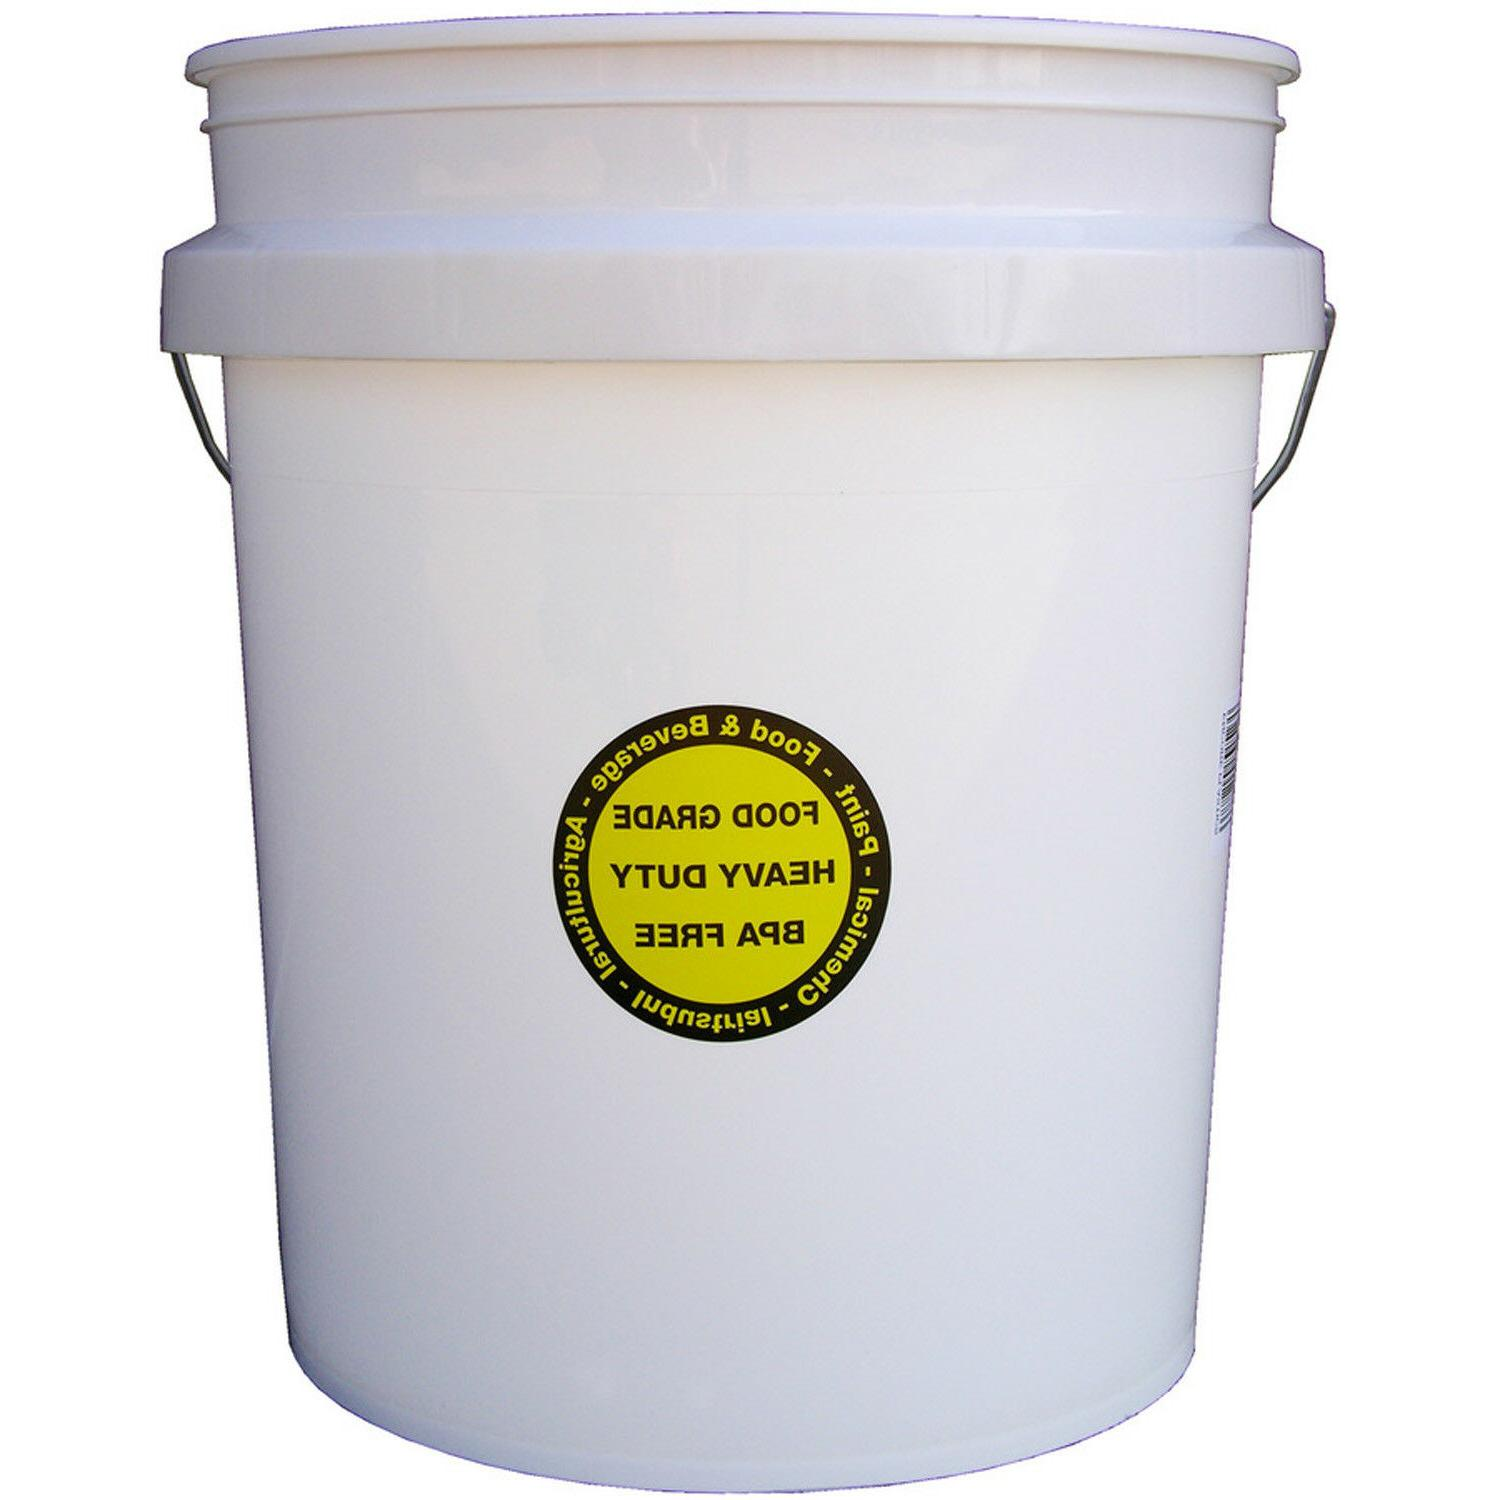 5 Gallon Bucket Commercial Paint Storage FDA